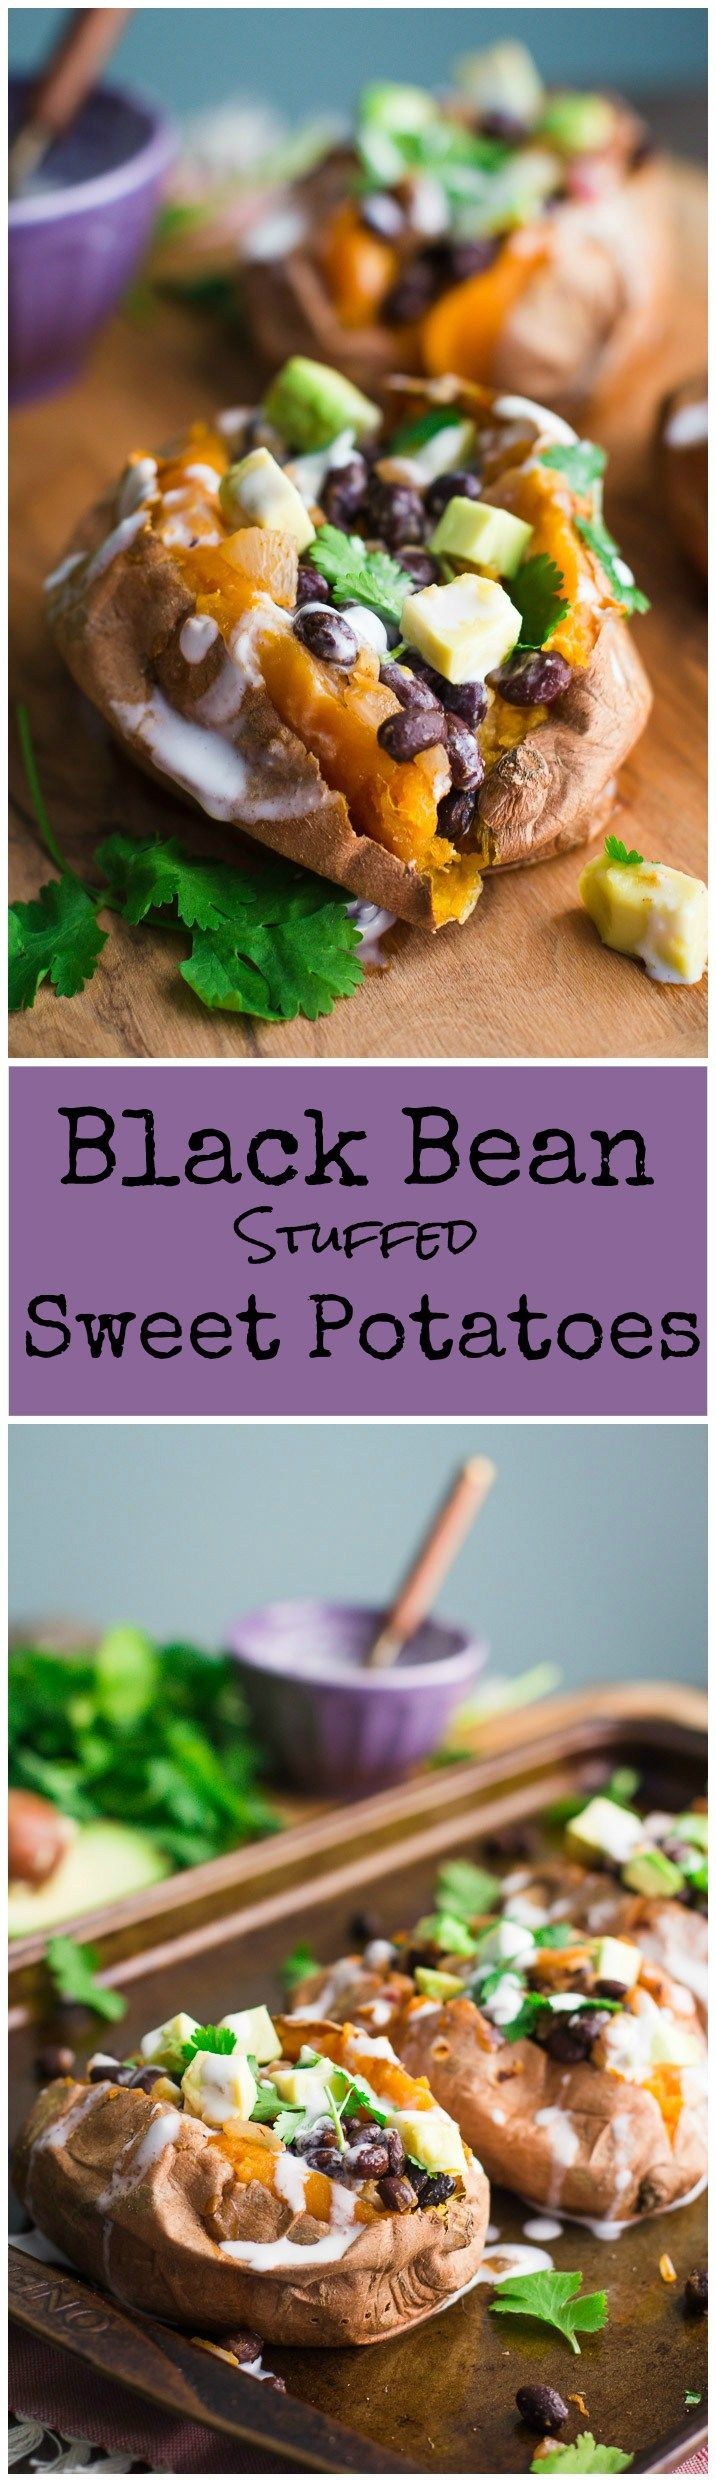 Black Bean Stuffed Sweet Potatoes- this recipe is VEGAN, GLUTEN-FREE, and very easy to make. Makes for a filling and healthy dinner!